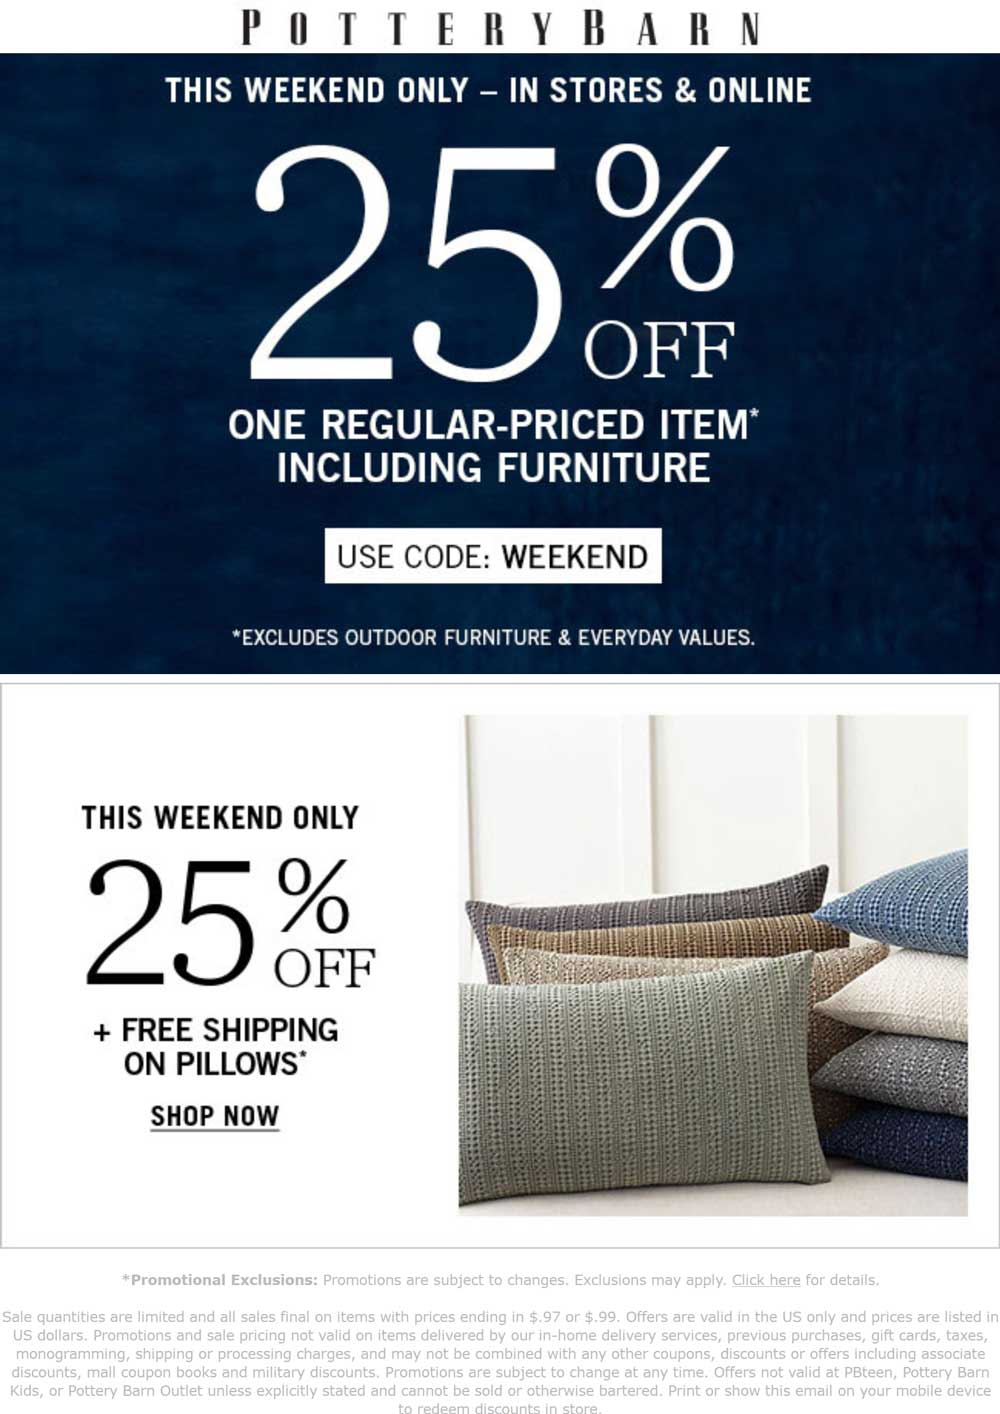 Pottery Barn Coupon August 2018 25% off a single item at Pottery Barn, or online via promo code WEEKEND